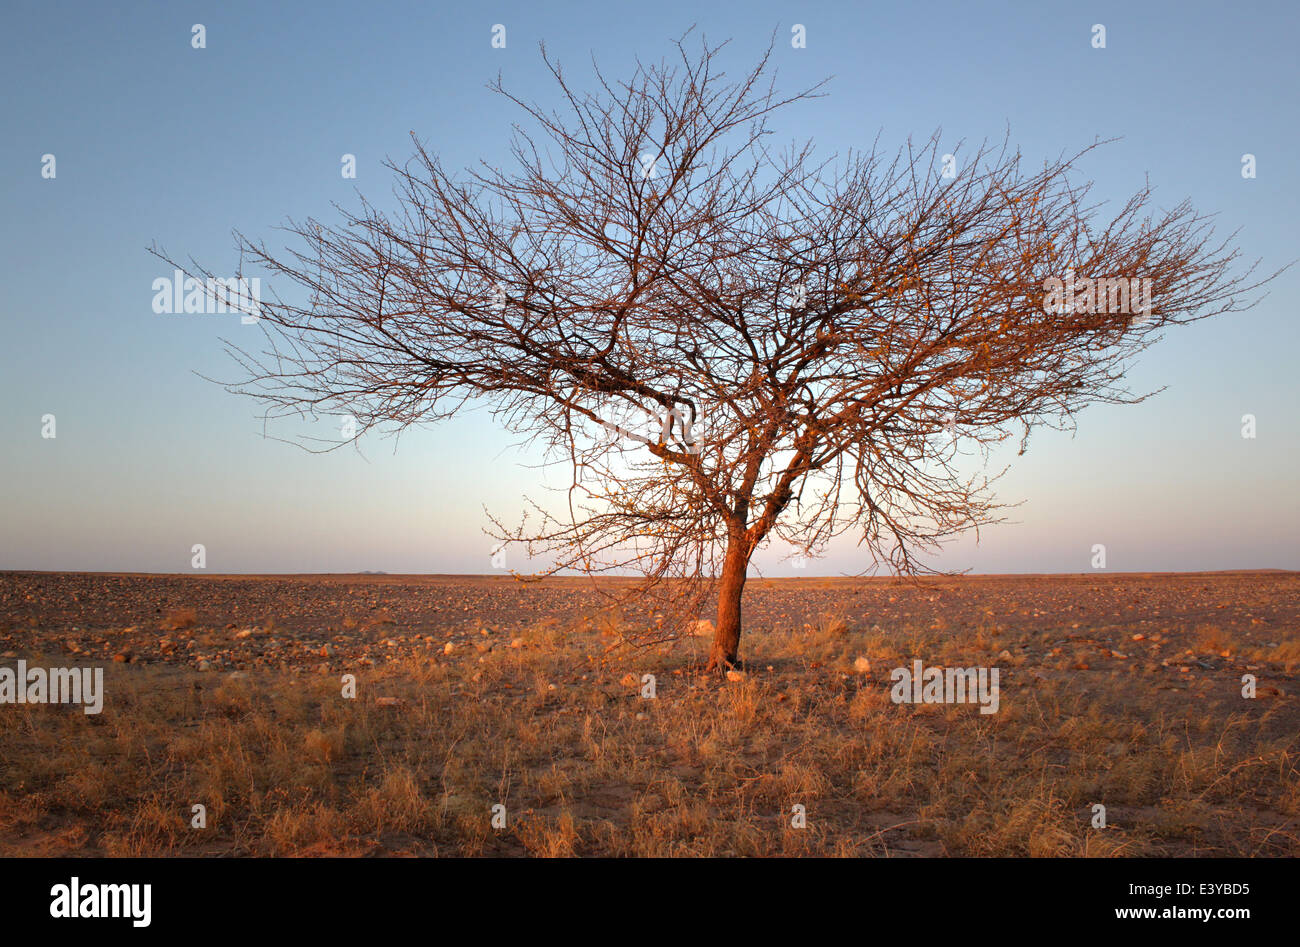 Lone tree in the Sahara desert, Mauritania, with a distant hill in the horizon - Stock Image